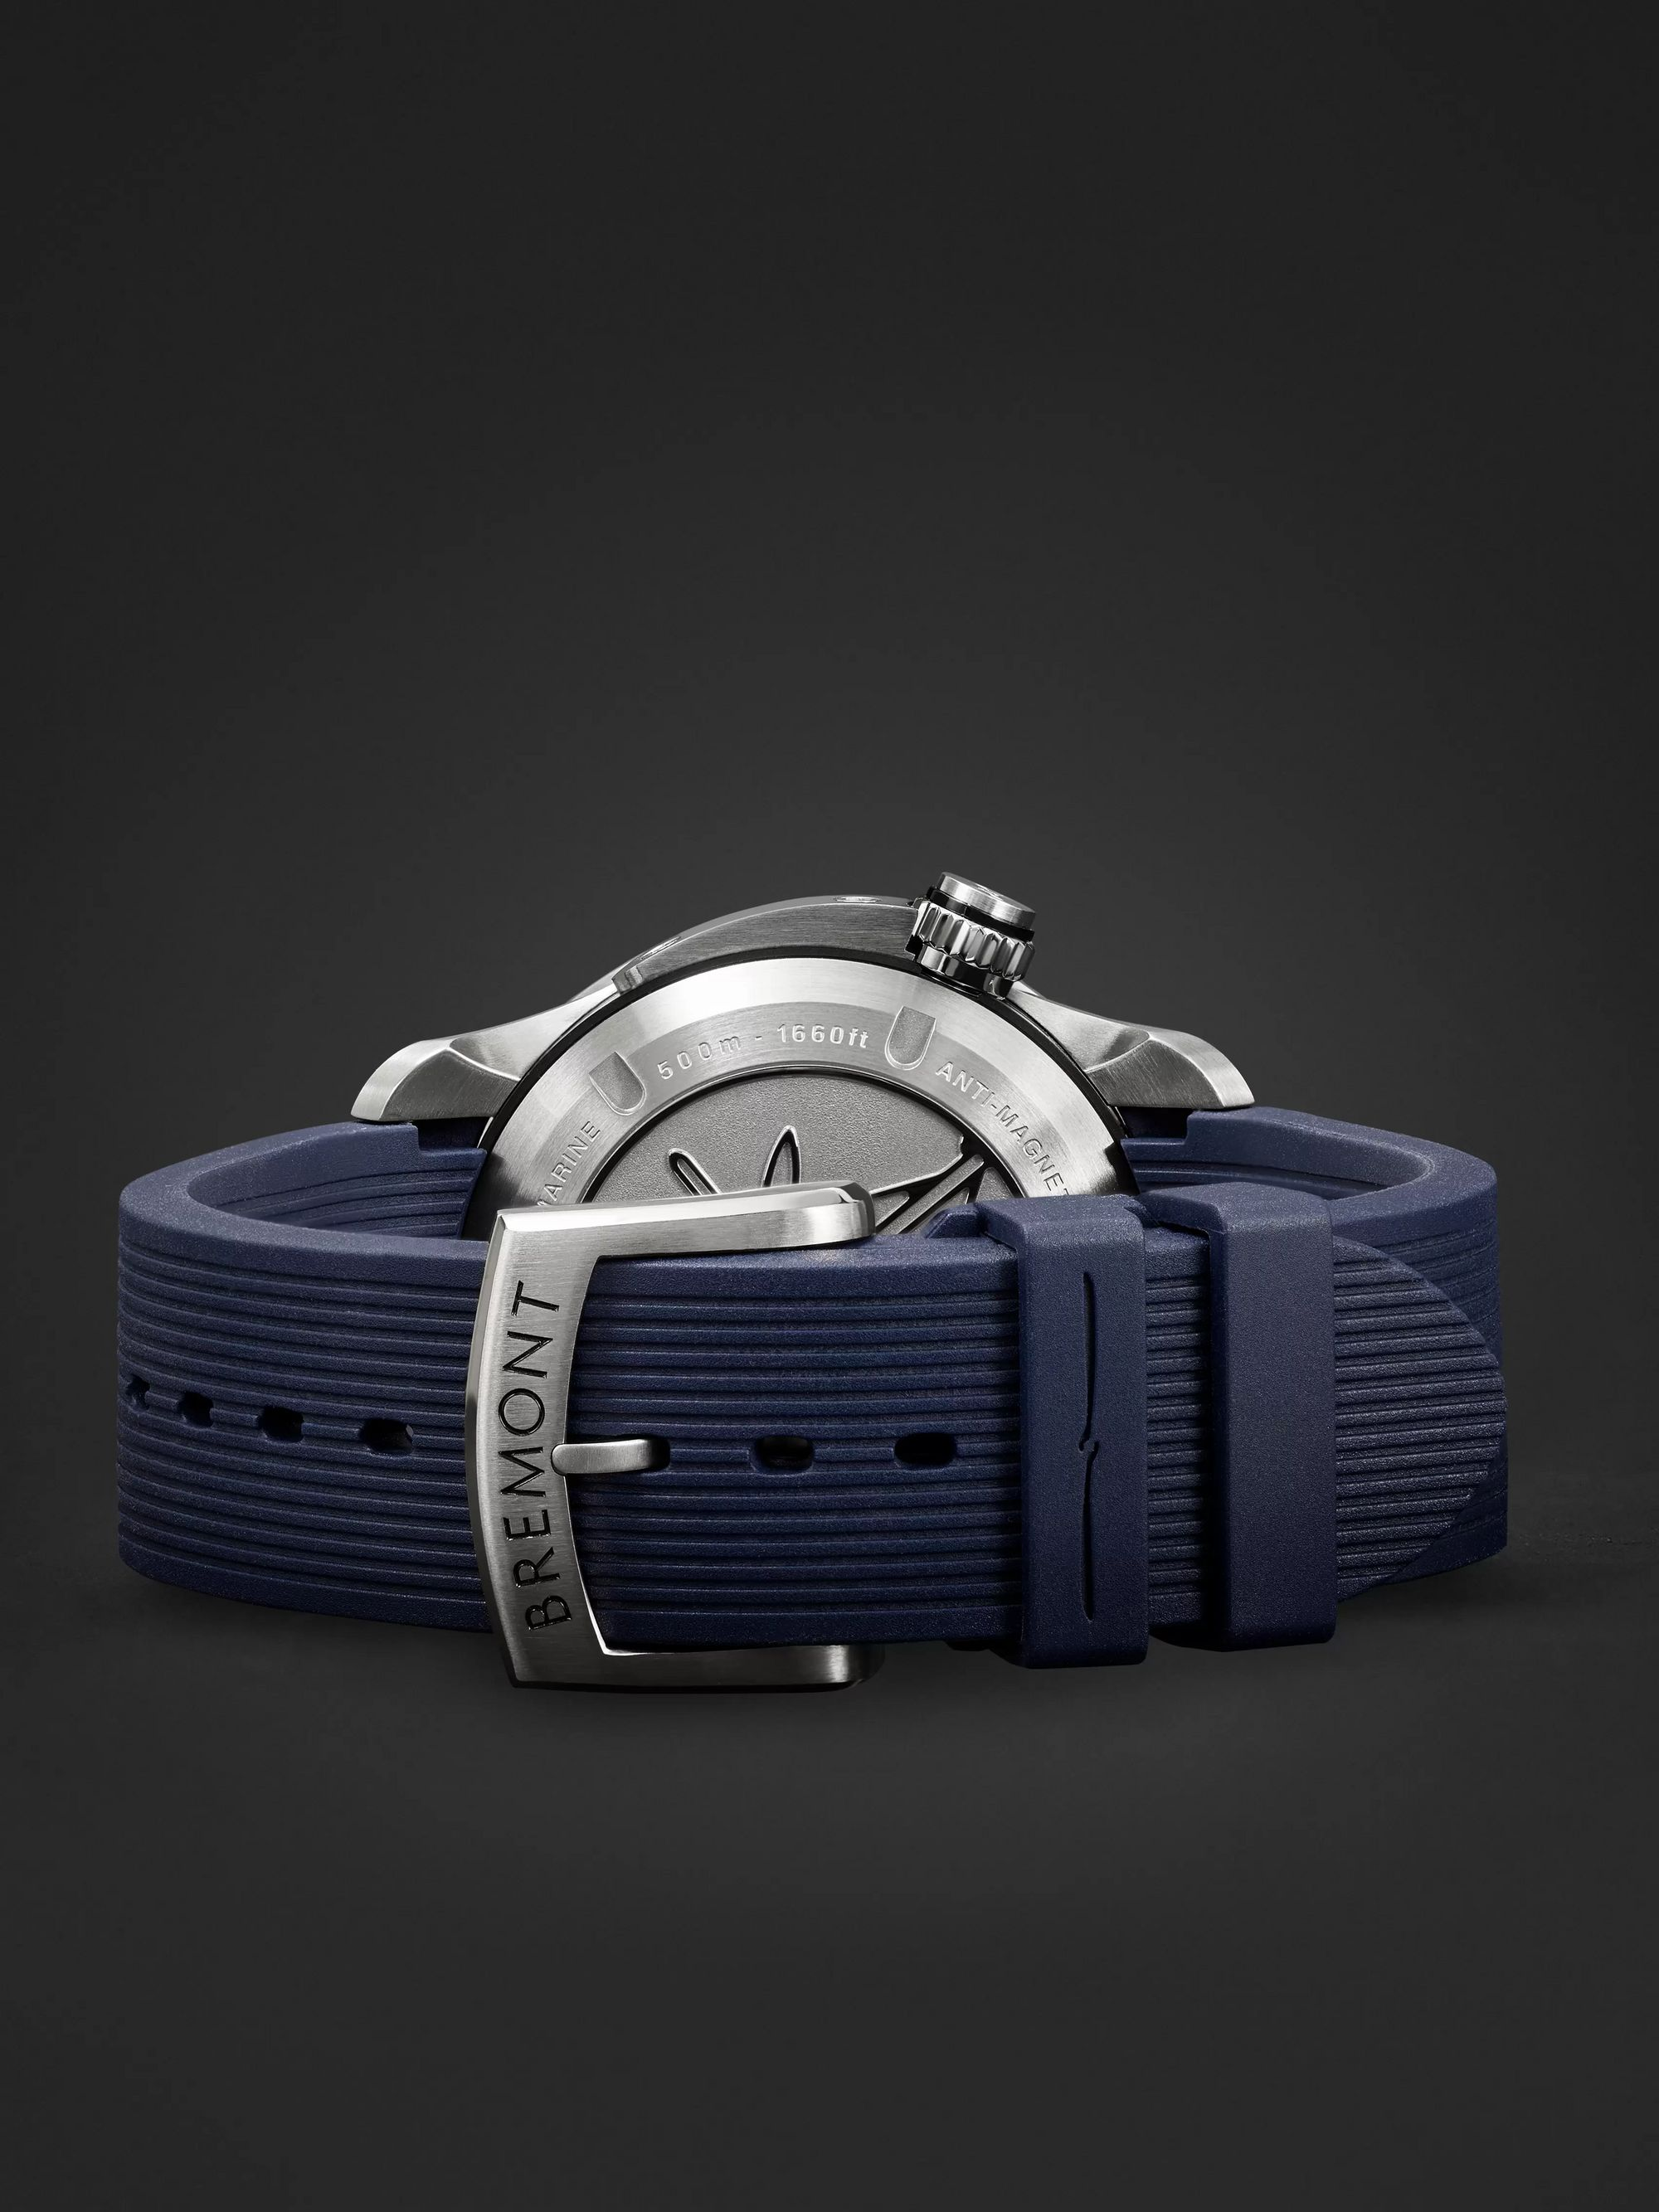 BREMONT Supermarine S500 Blue Automatic 43mm Stainless Steel and Rubber Watch, Ref. S500-BL-2018-R-S